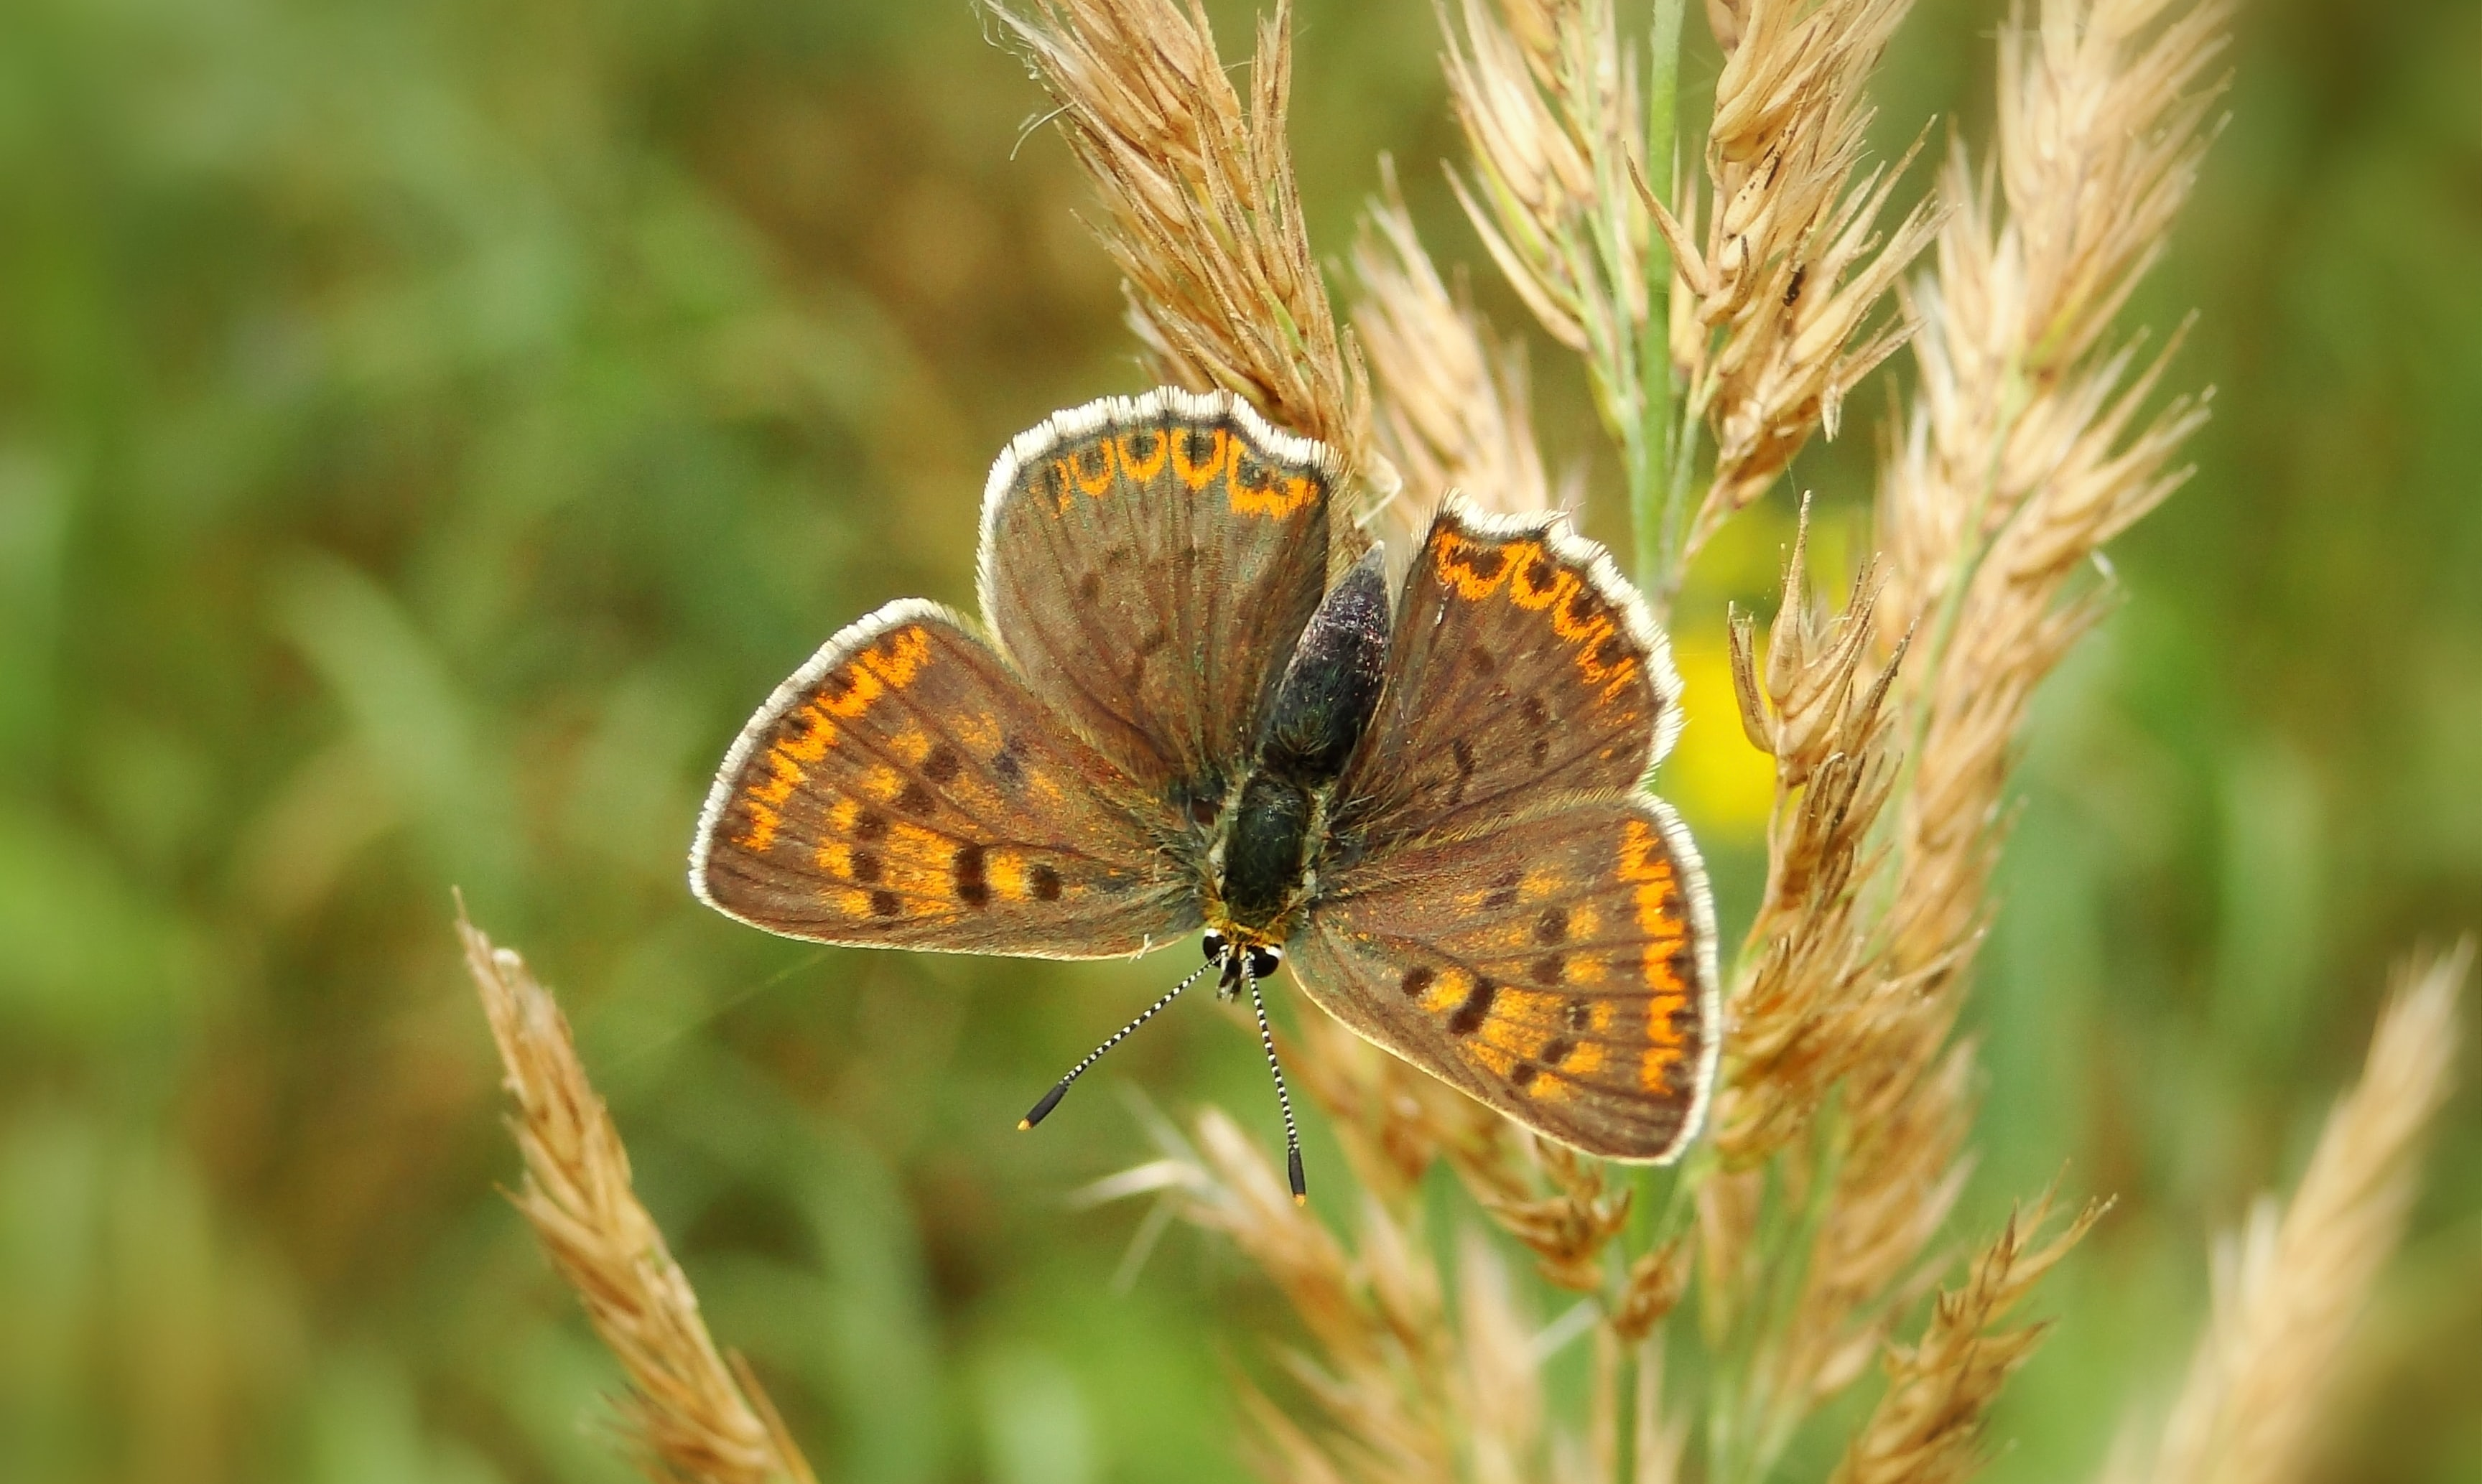 butterfly perched on wheat